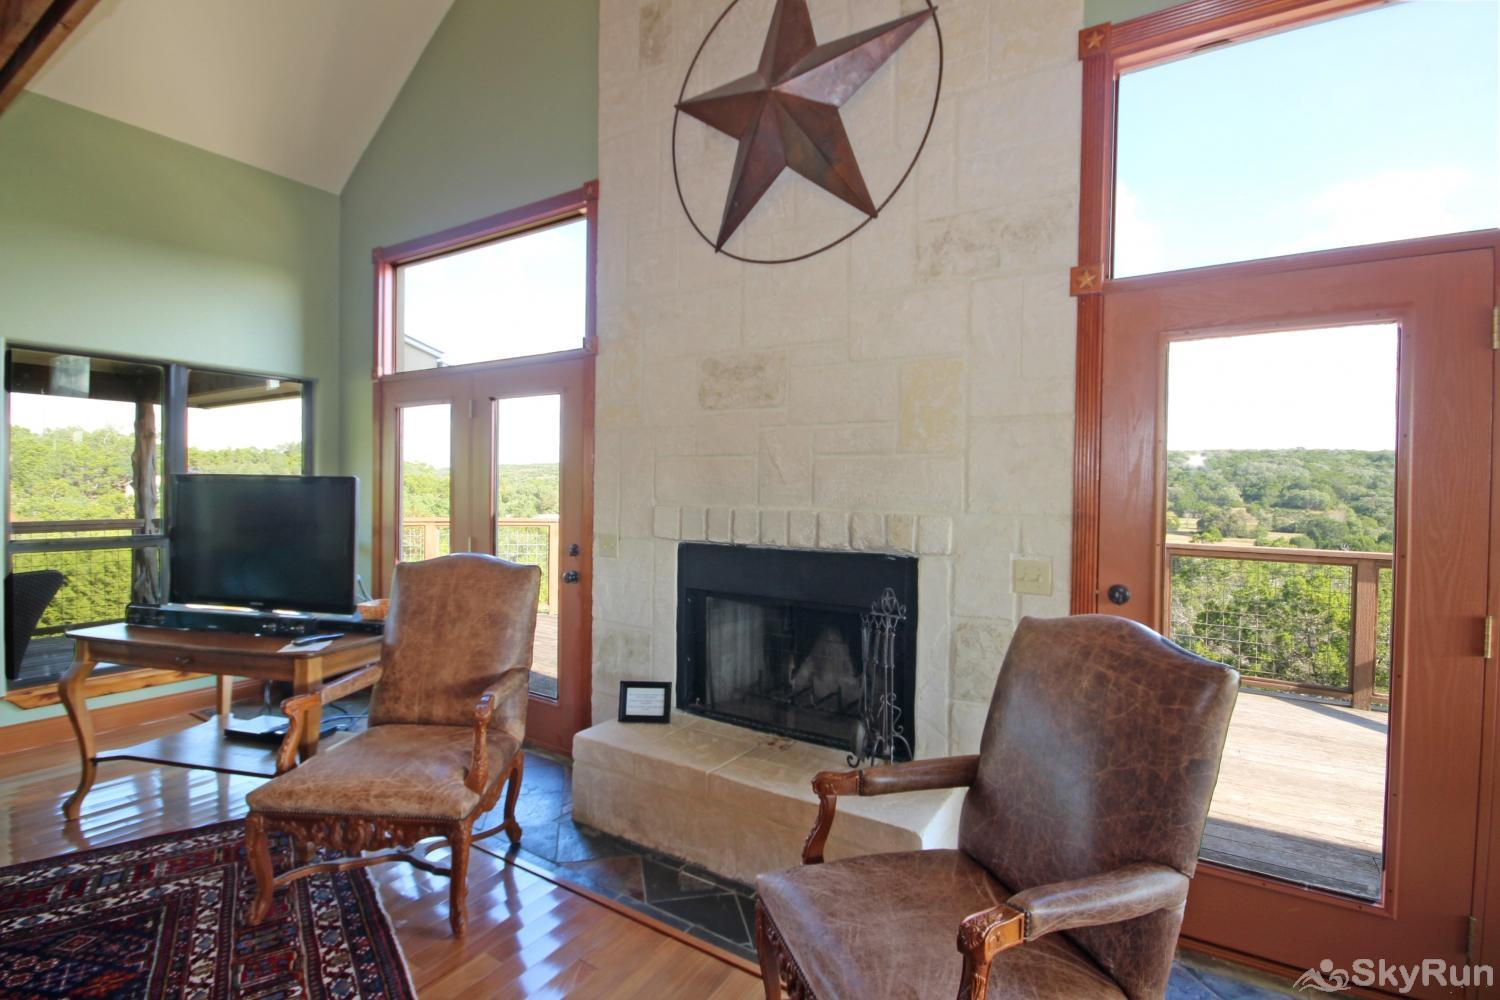 STAR HOUSE Fireside seating area